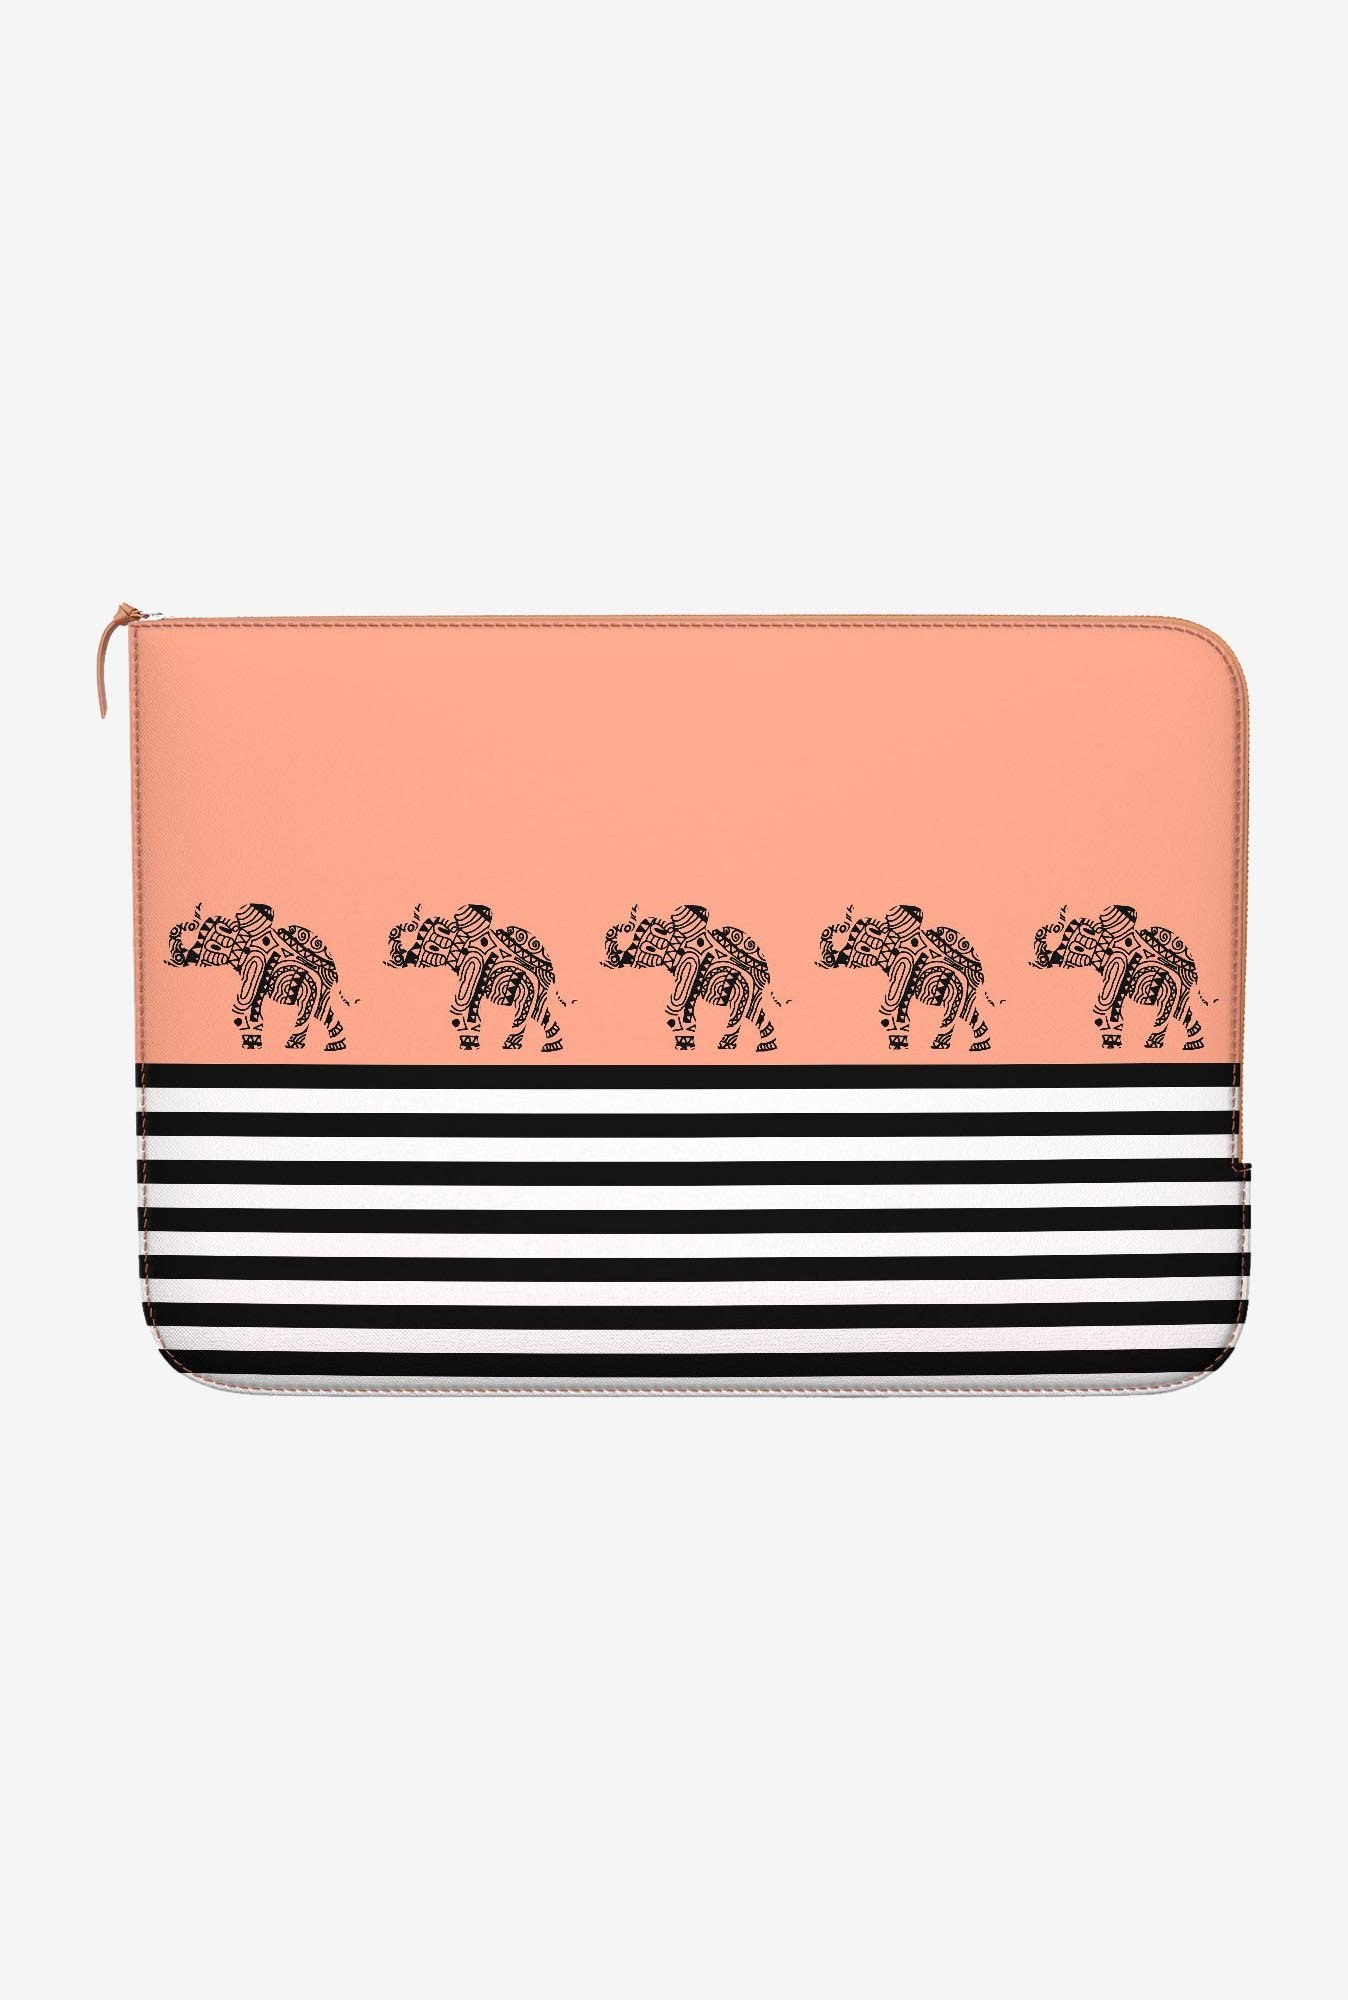 DailyObjects Stripes Coral MacBook Pro 13 Zippered Sleeve